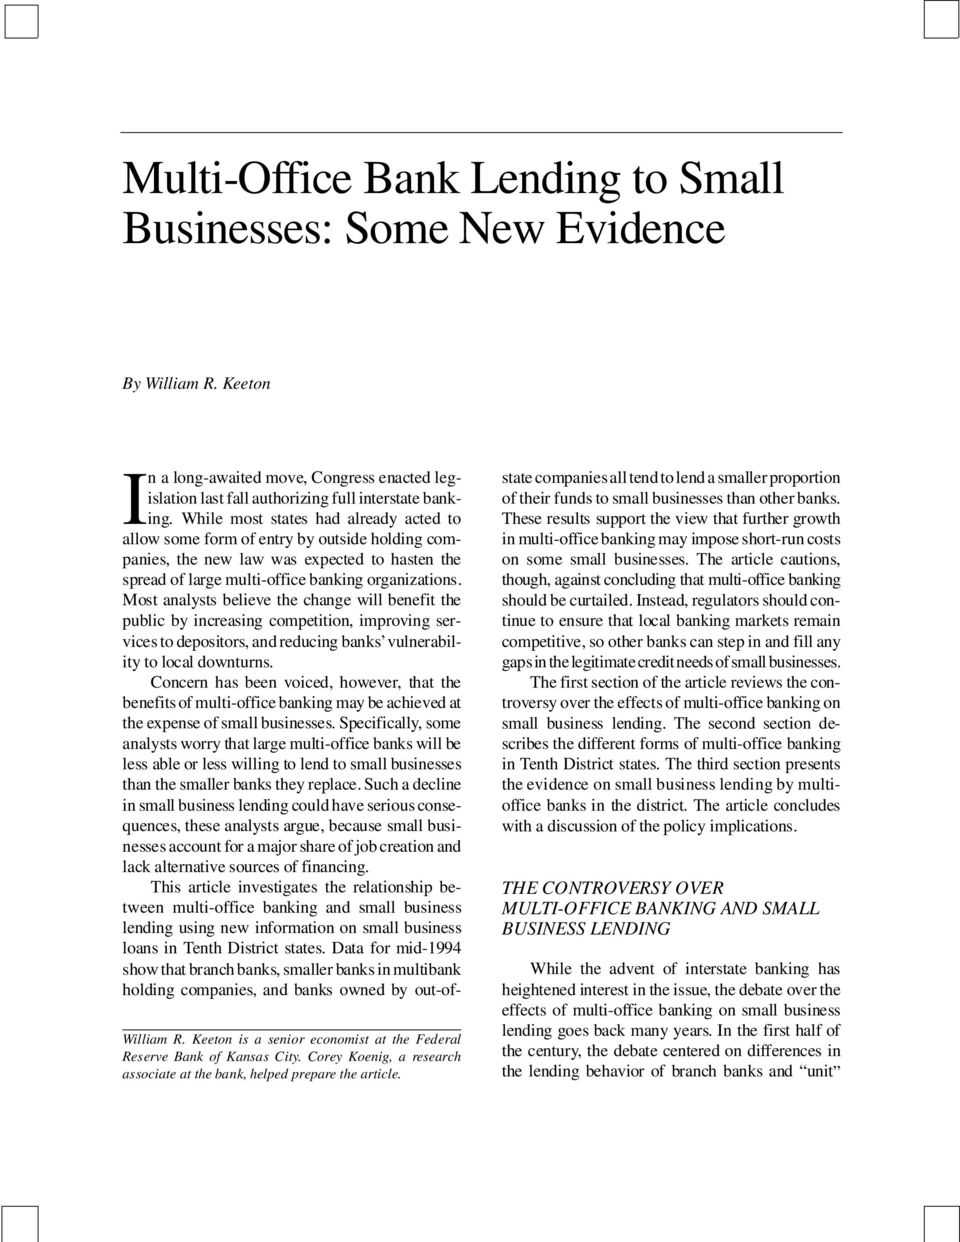 While most states had already acted to allow some form of entry by outside holding companies, the new law was expected to hasten the spread of large multi-office banking organizations.